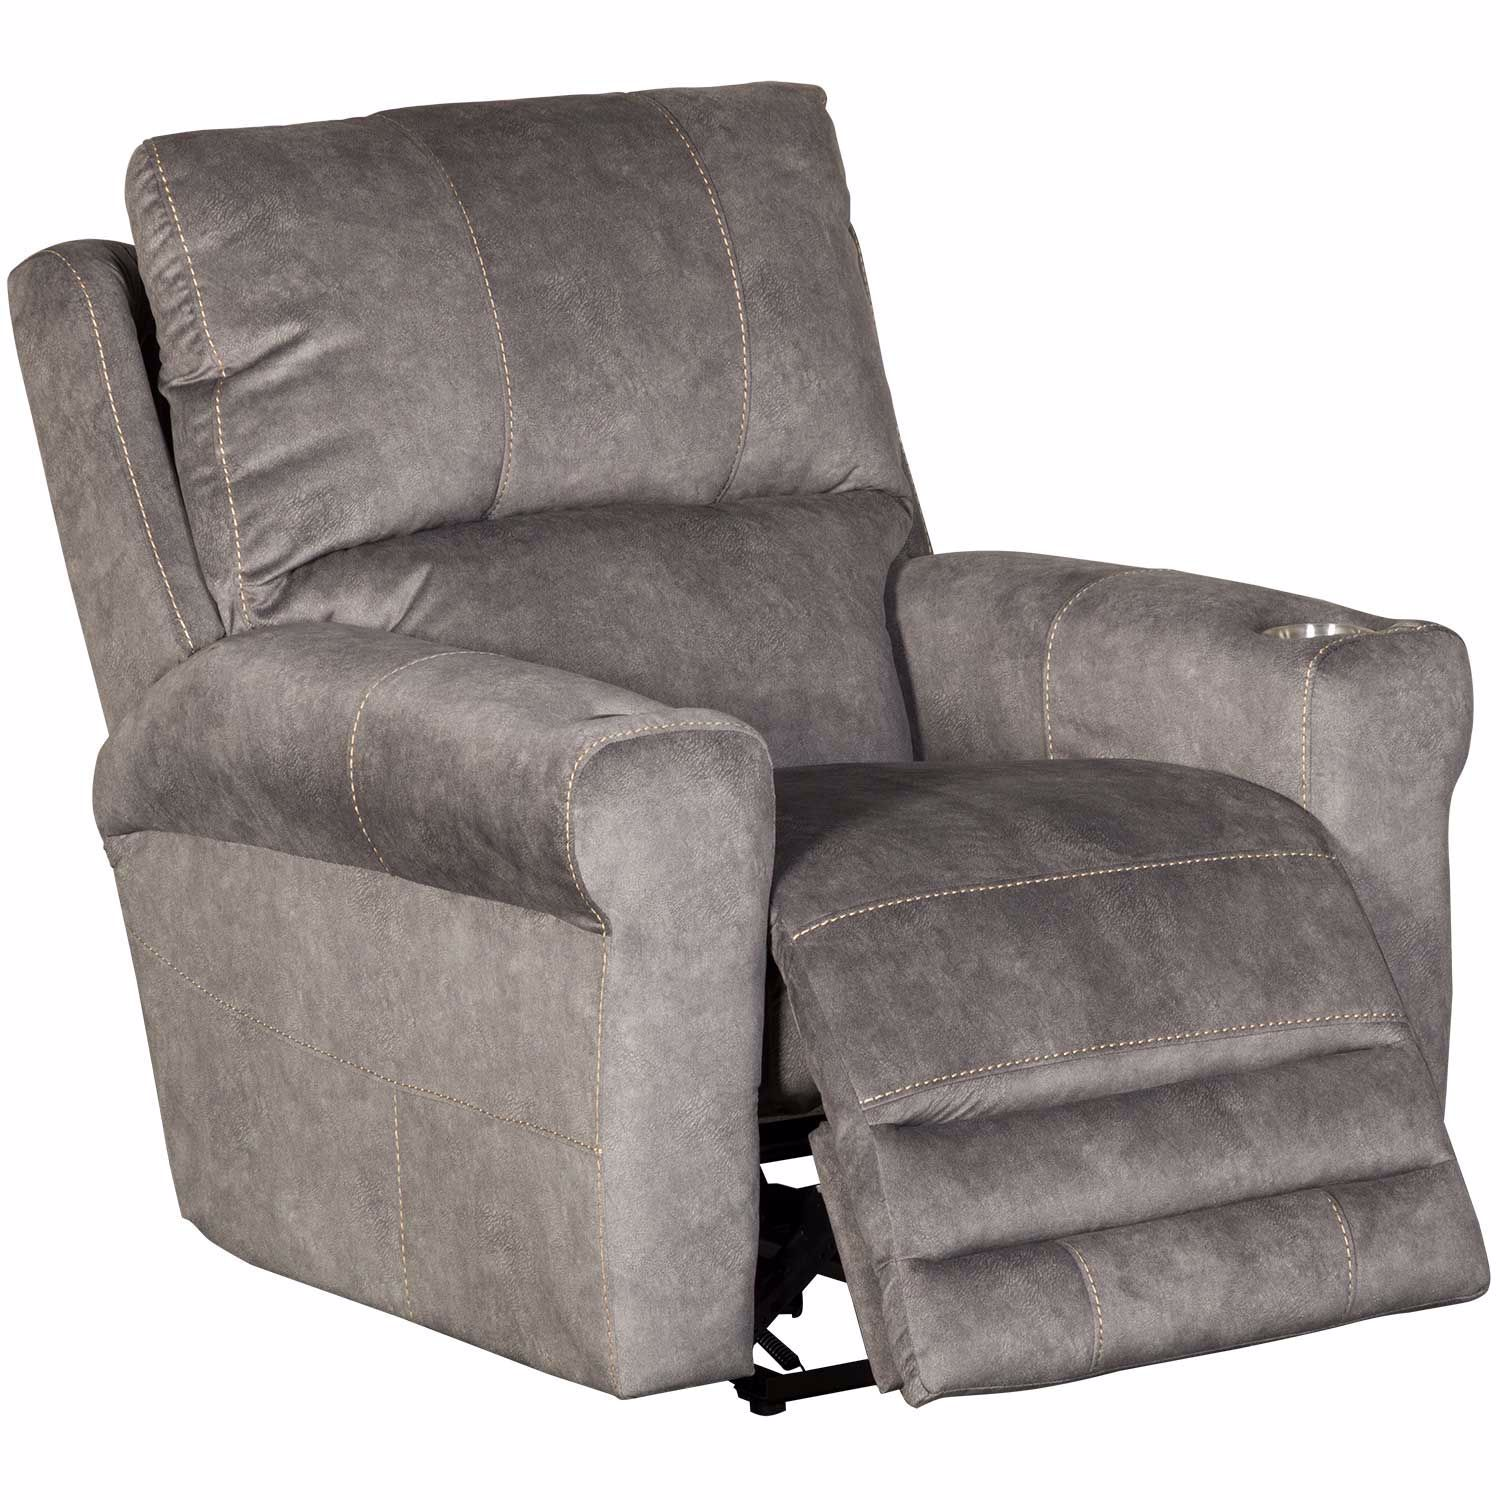 Picture of Vance Graphite Power Recliner with Voice Activated Headrest